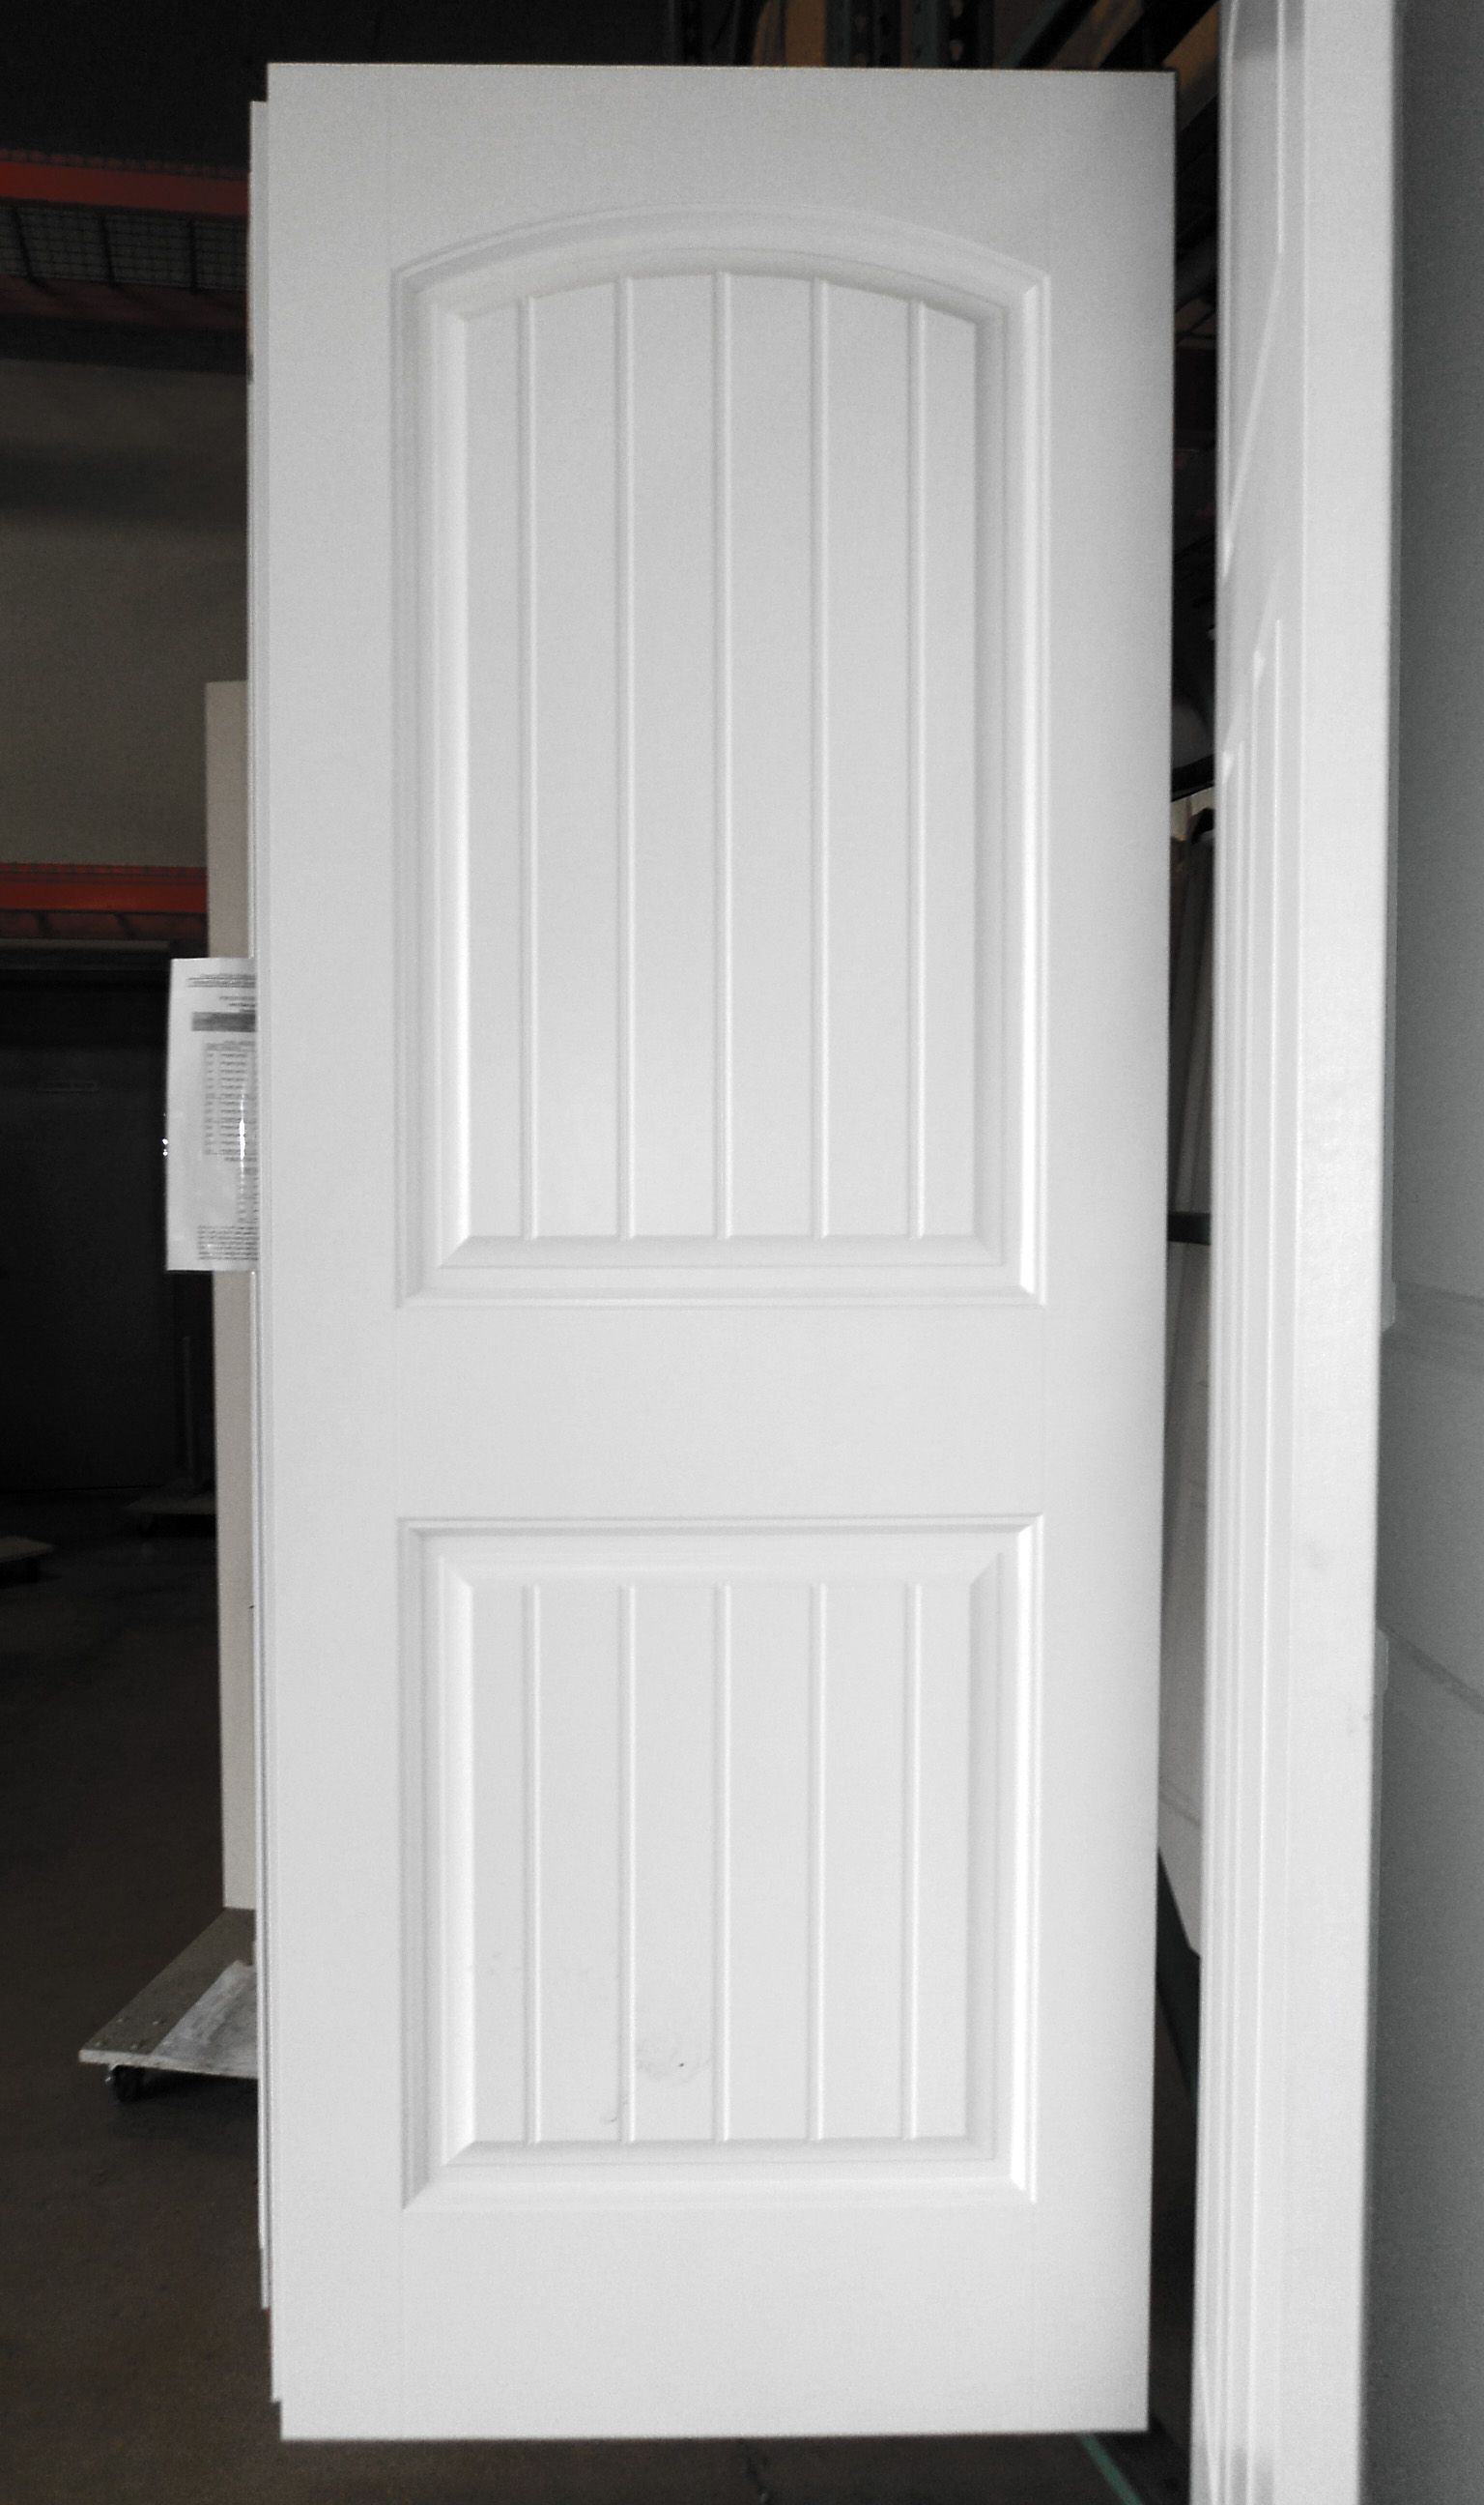 2 panel painted white cheyenne smooth masonite hollow core interior door interior doors - Sophisticated black interior doors ...